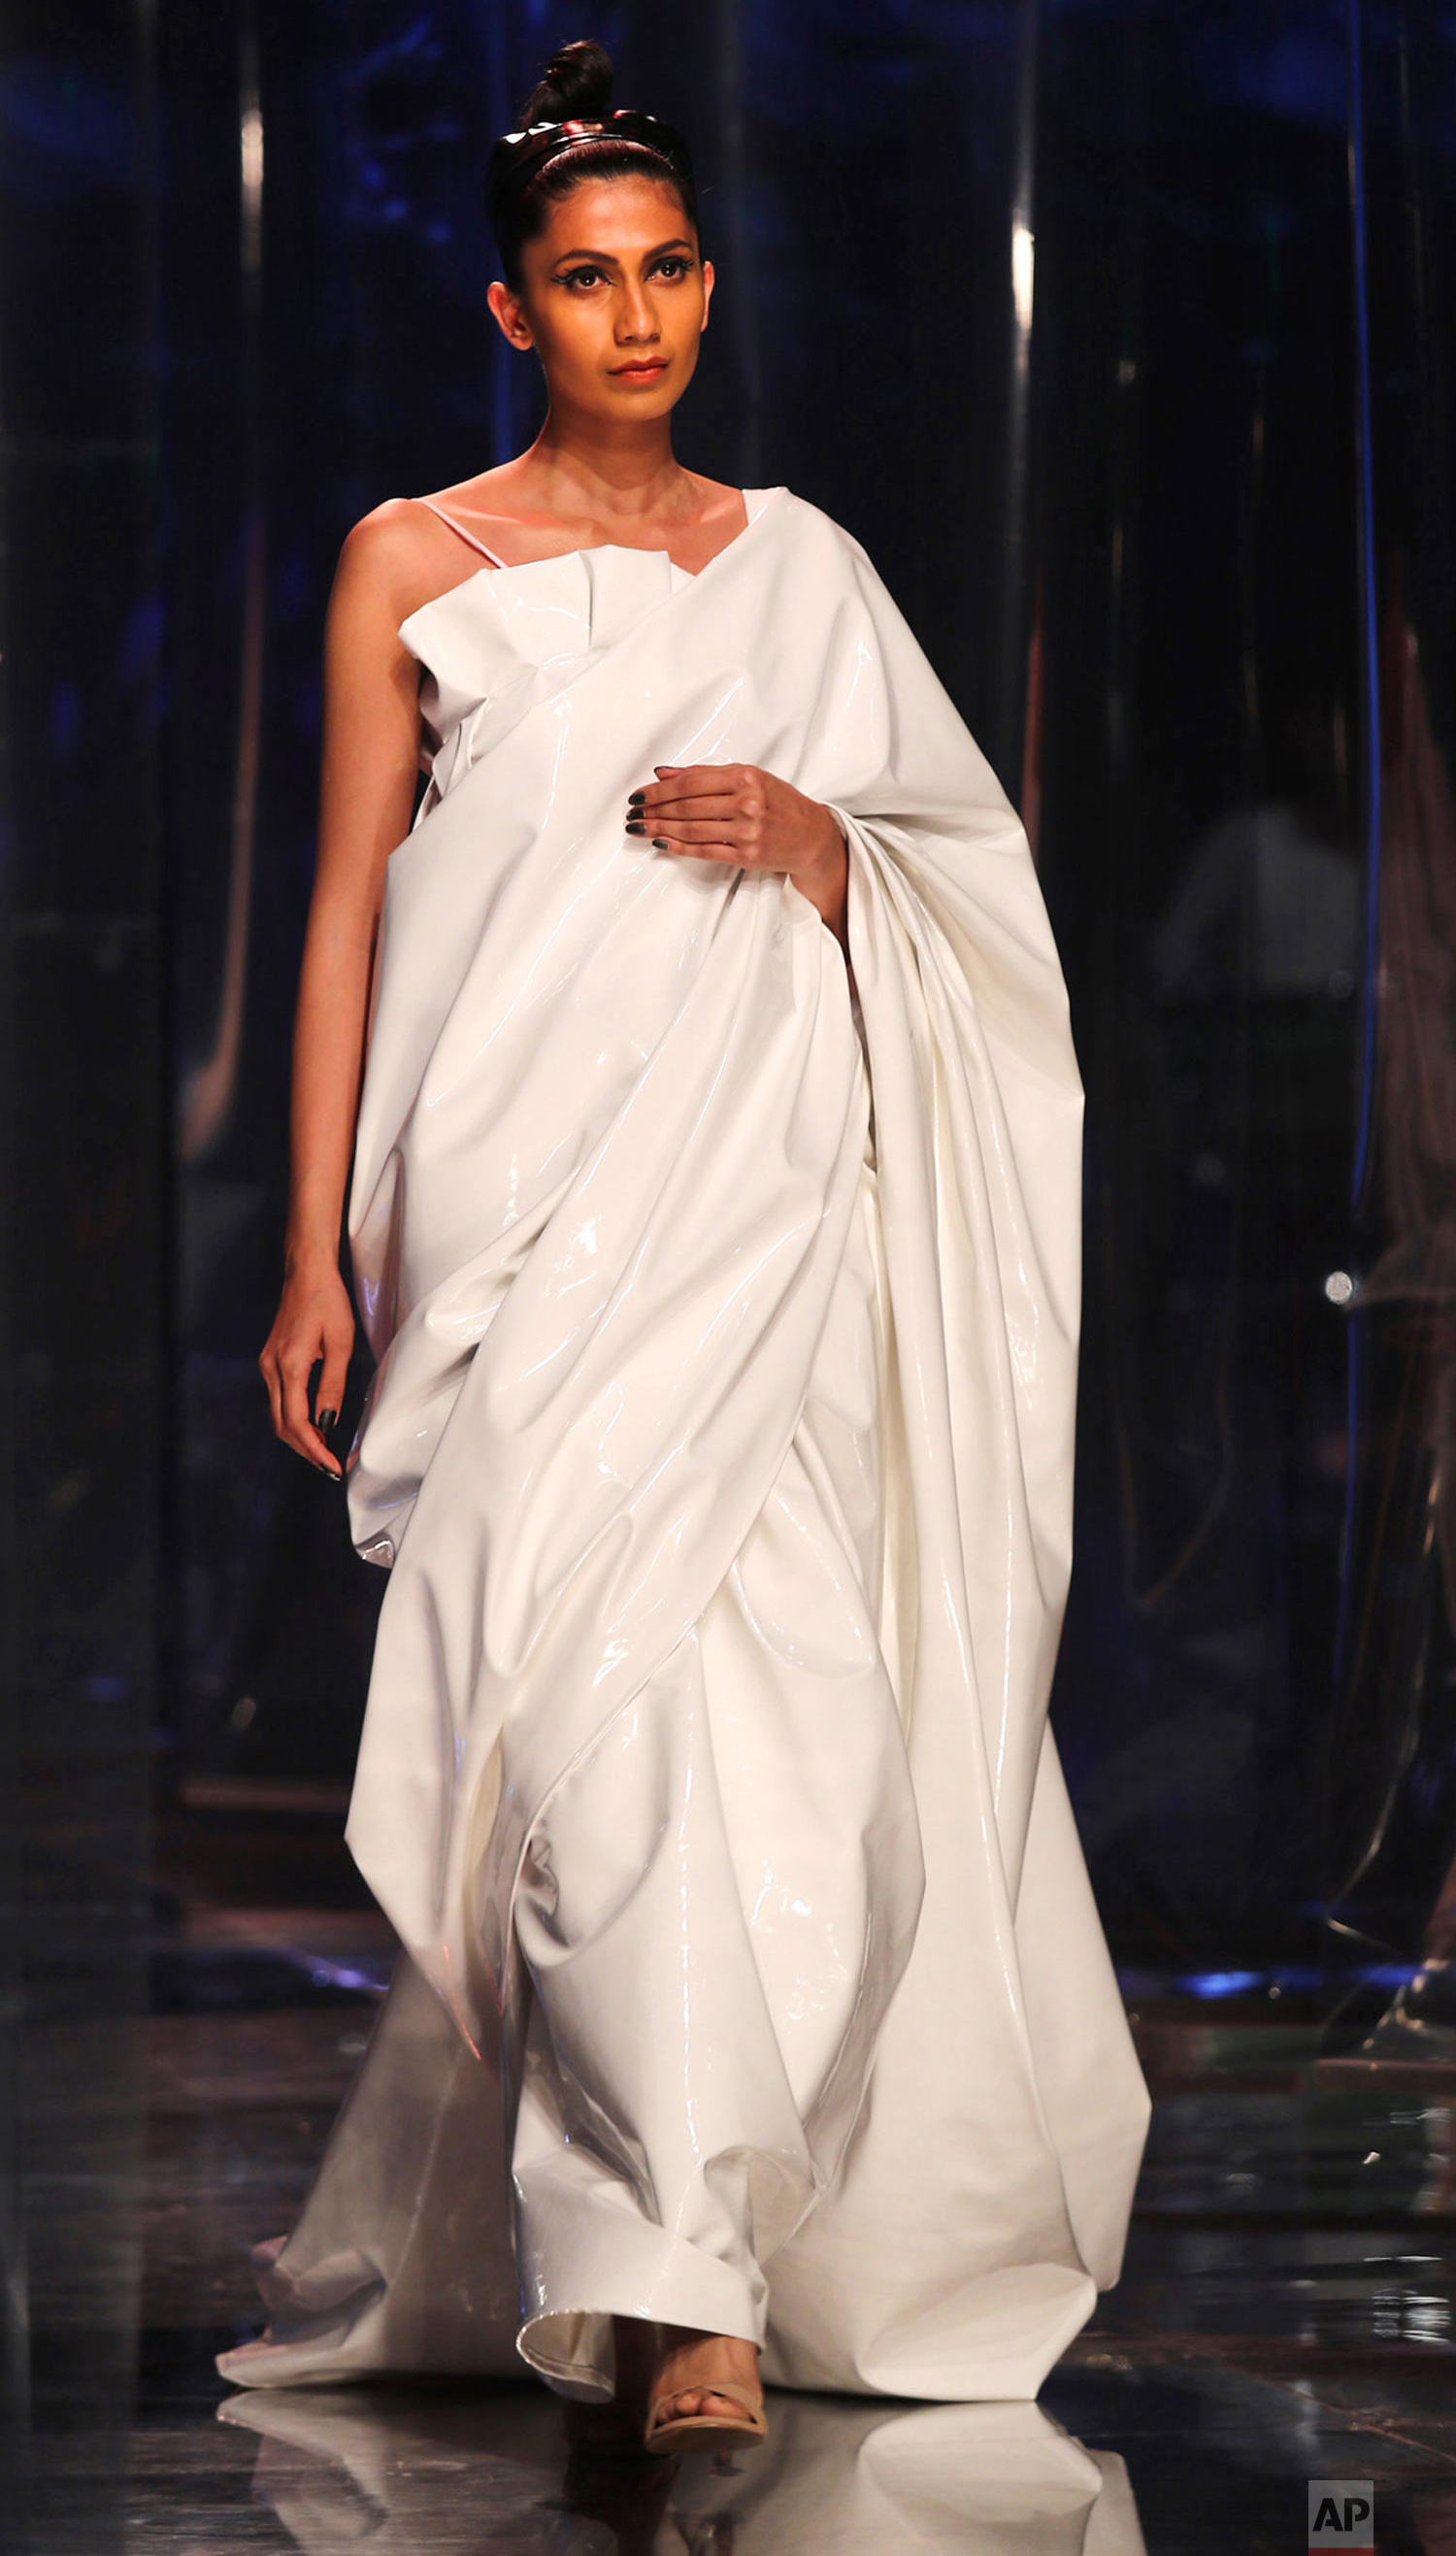 A model struts the runway at the Lotus India Fashion Week, March 16, 2019, in New Delhi. (AP Photo/Manish Swarup)